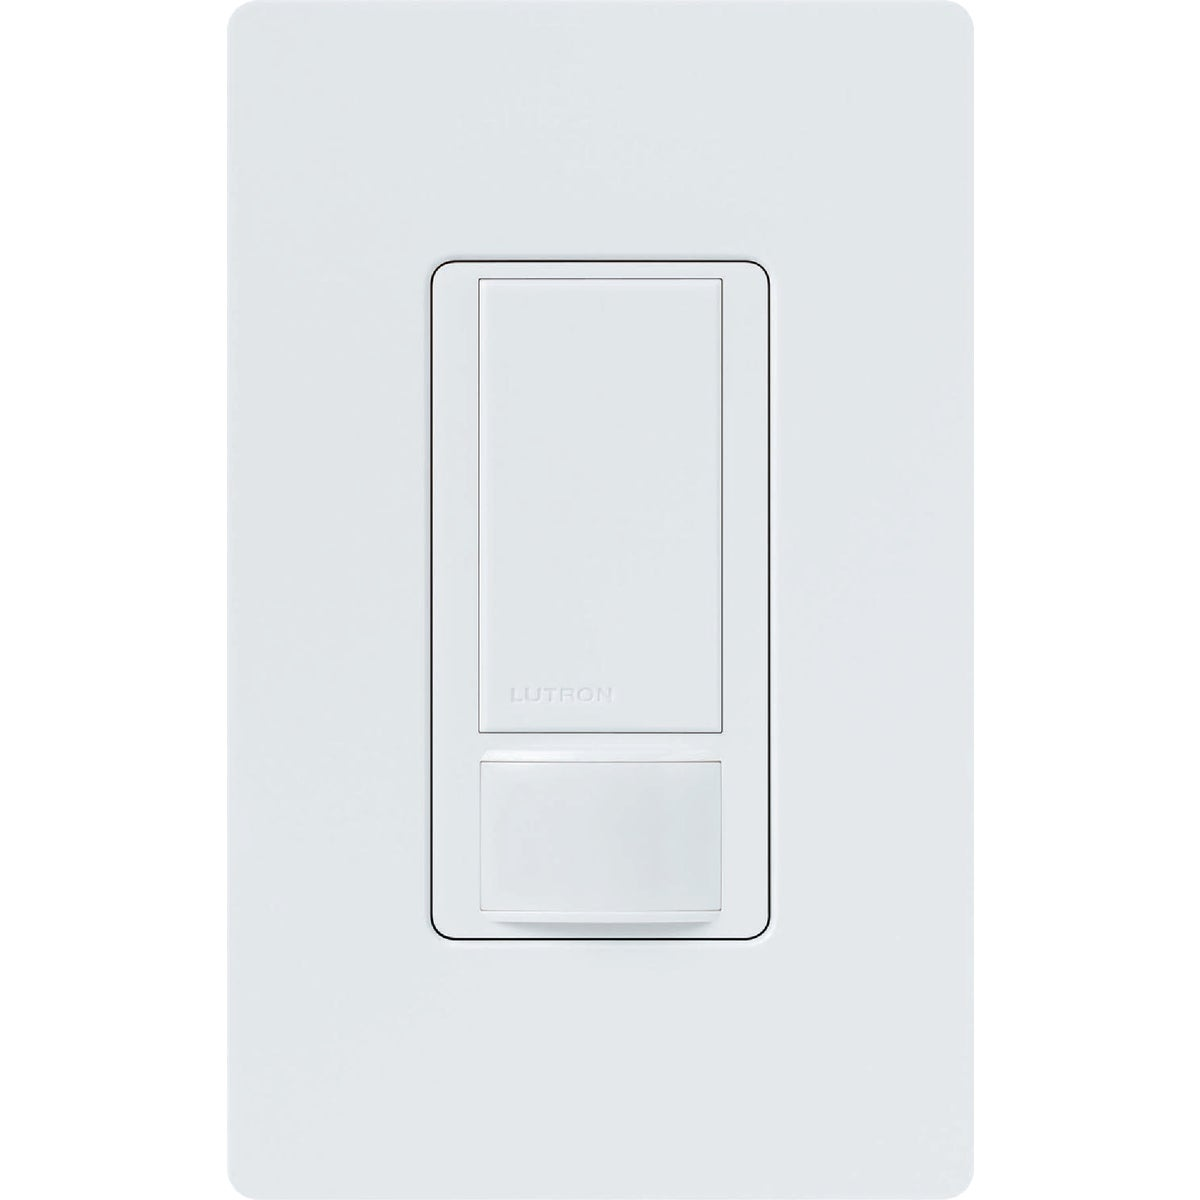 WH OCCUPANCY SENSOR - MS-OPS2H-WH by Lutron Elect Co Inc